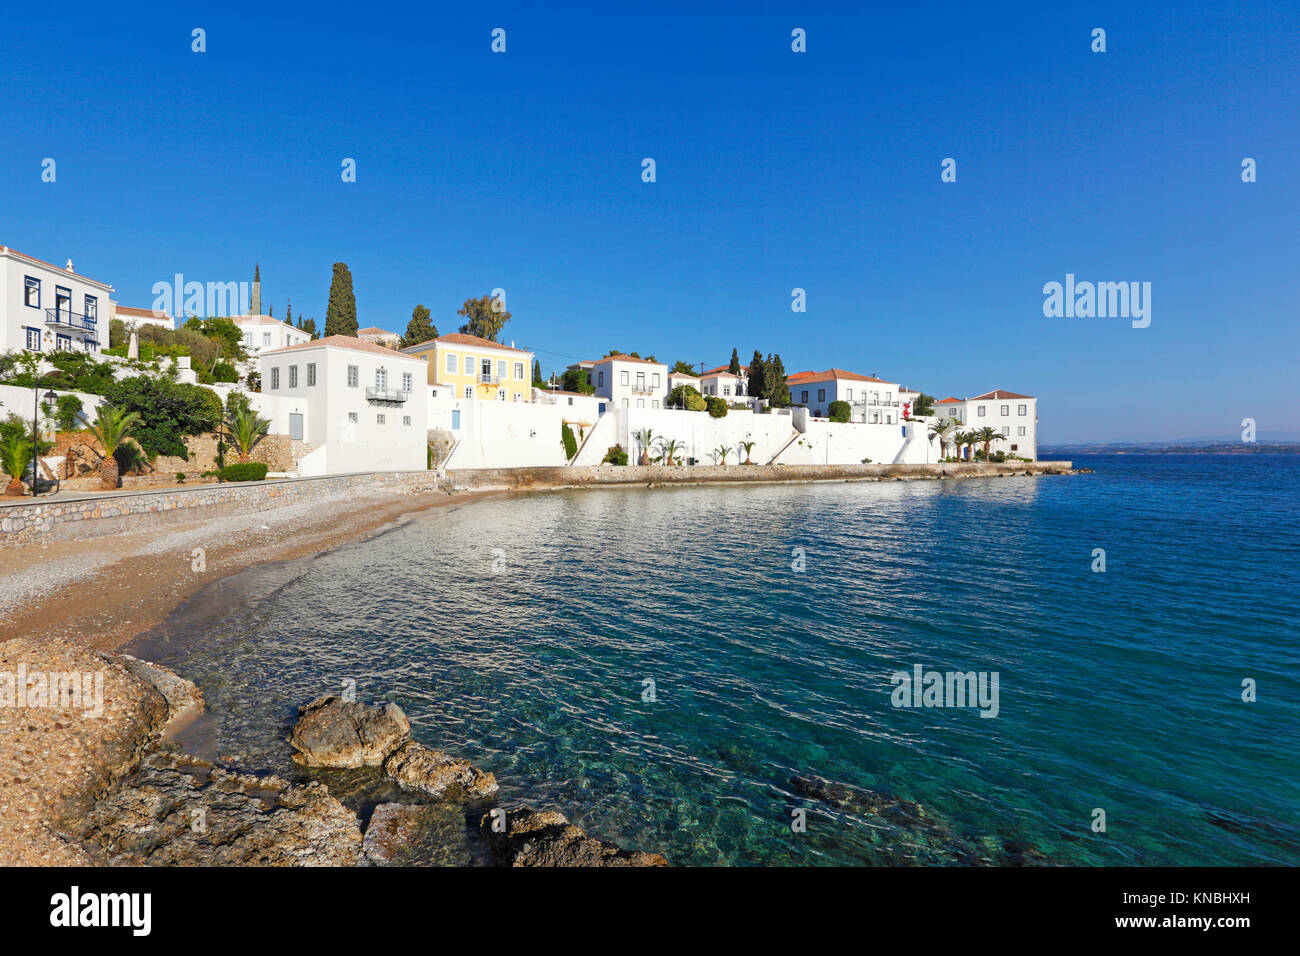 agios nikolaos gay personals Near agios nikolaos city, you will find the beaches of vai and agia fotia, which are the most popular gay friendly beaches of the area.